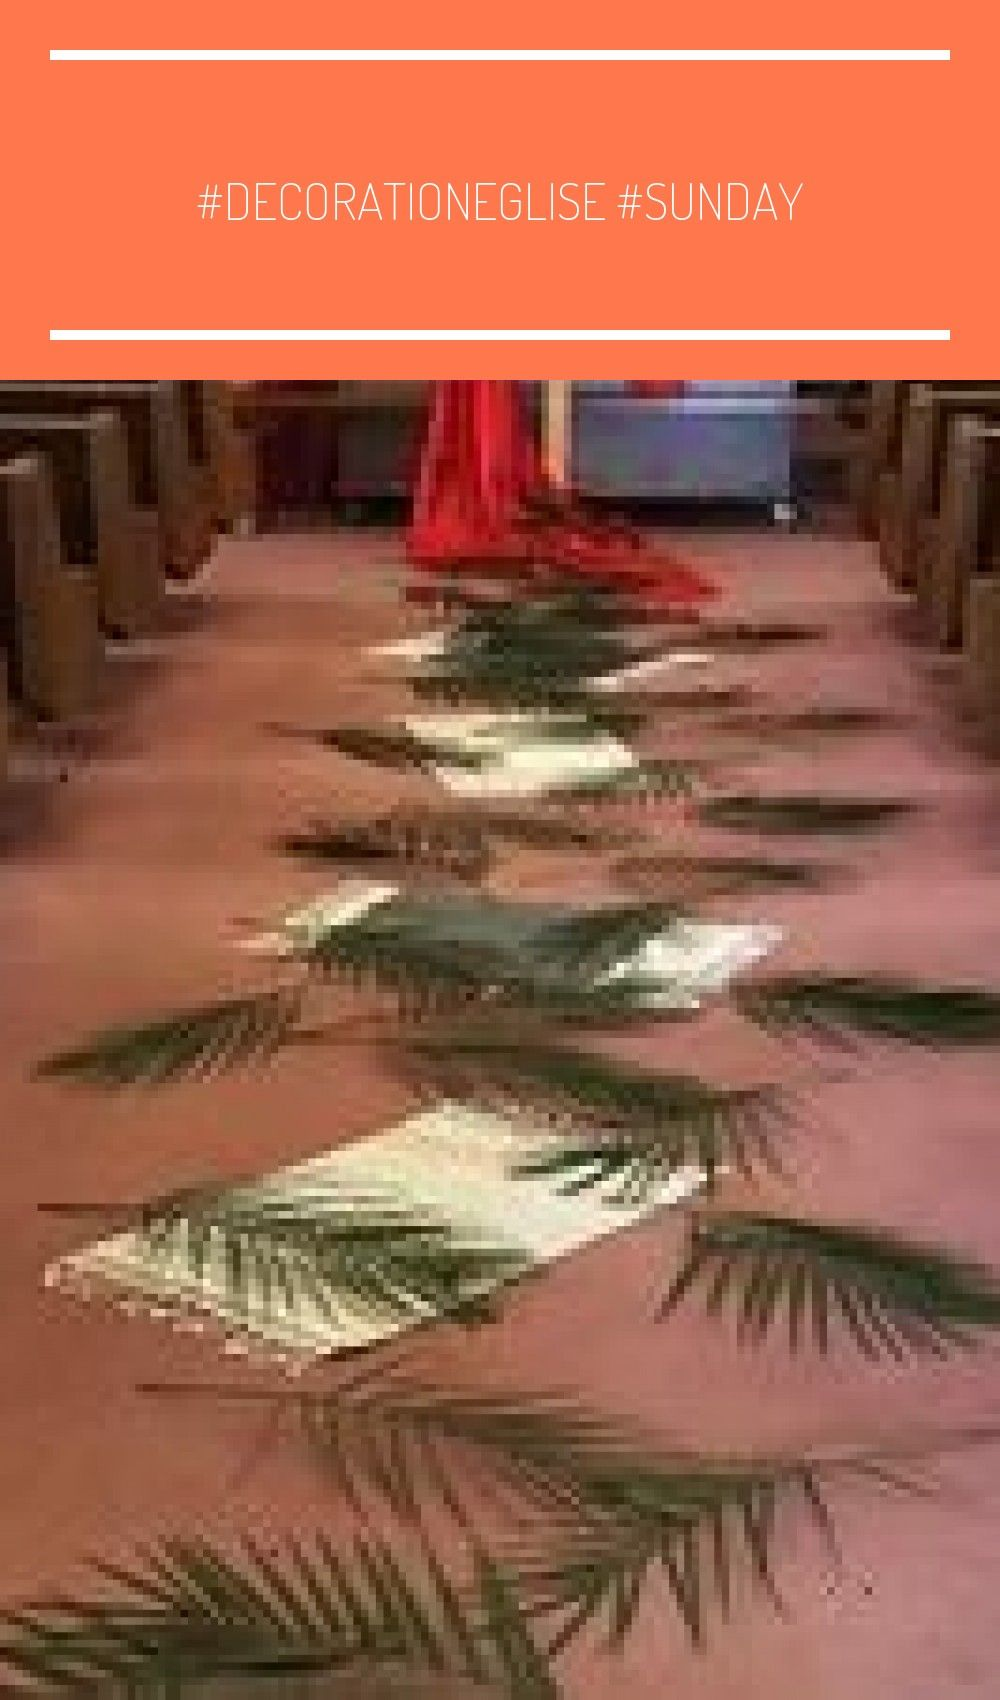 Sunday Alter   Palm Sunday Alter  Palm Sunday Alter   Palm Sunday Alter   They are beautiful lovable and affordable You deserve itRug in living roomfarmhouse RugRug in be...